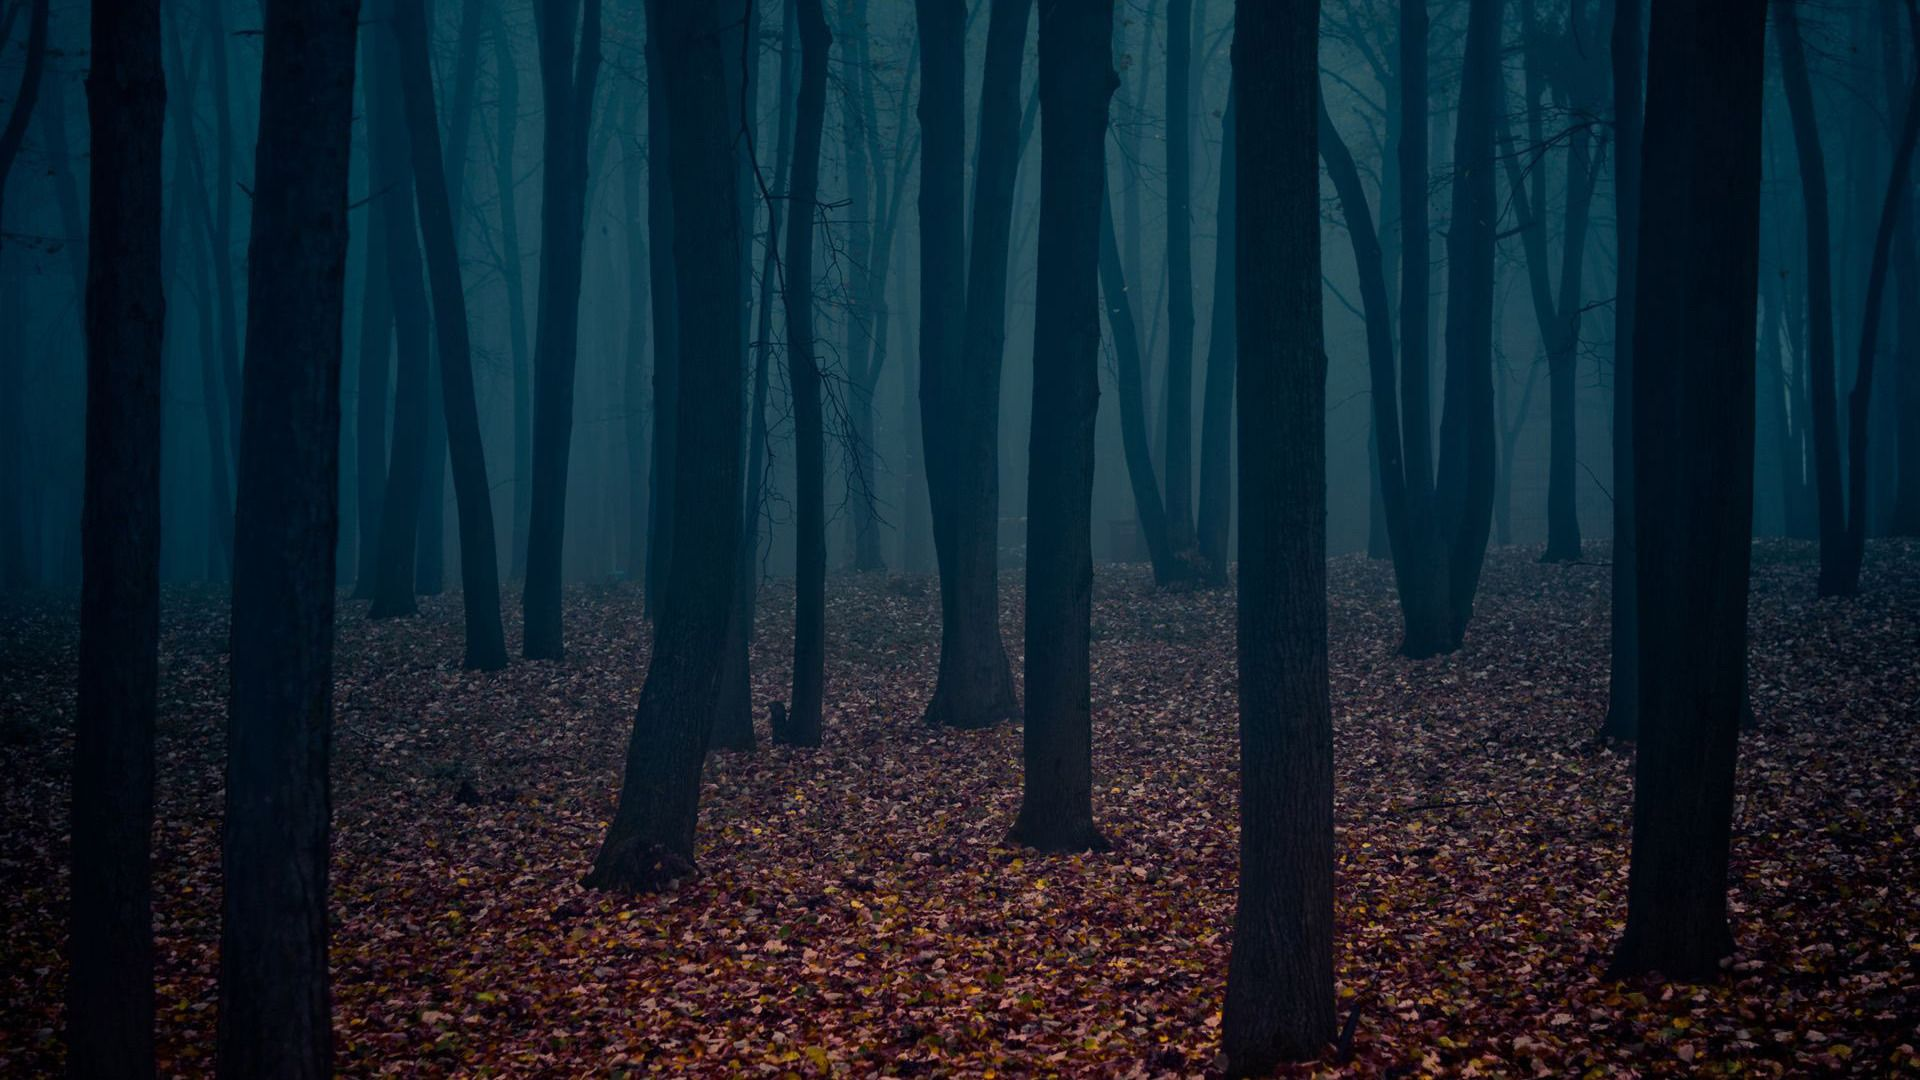 Dark forest clipart backgrounds.